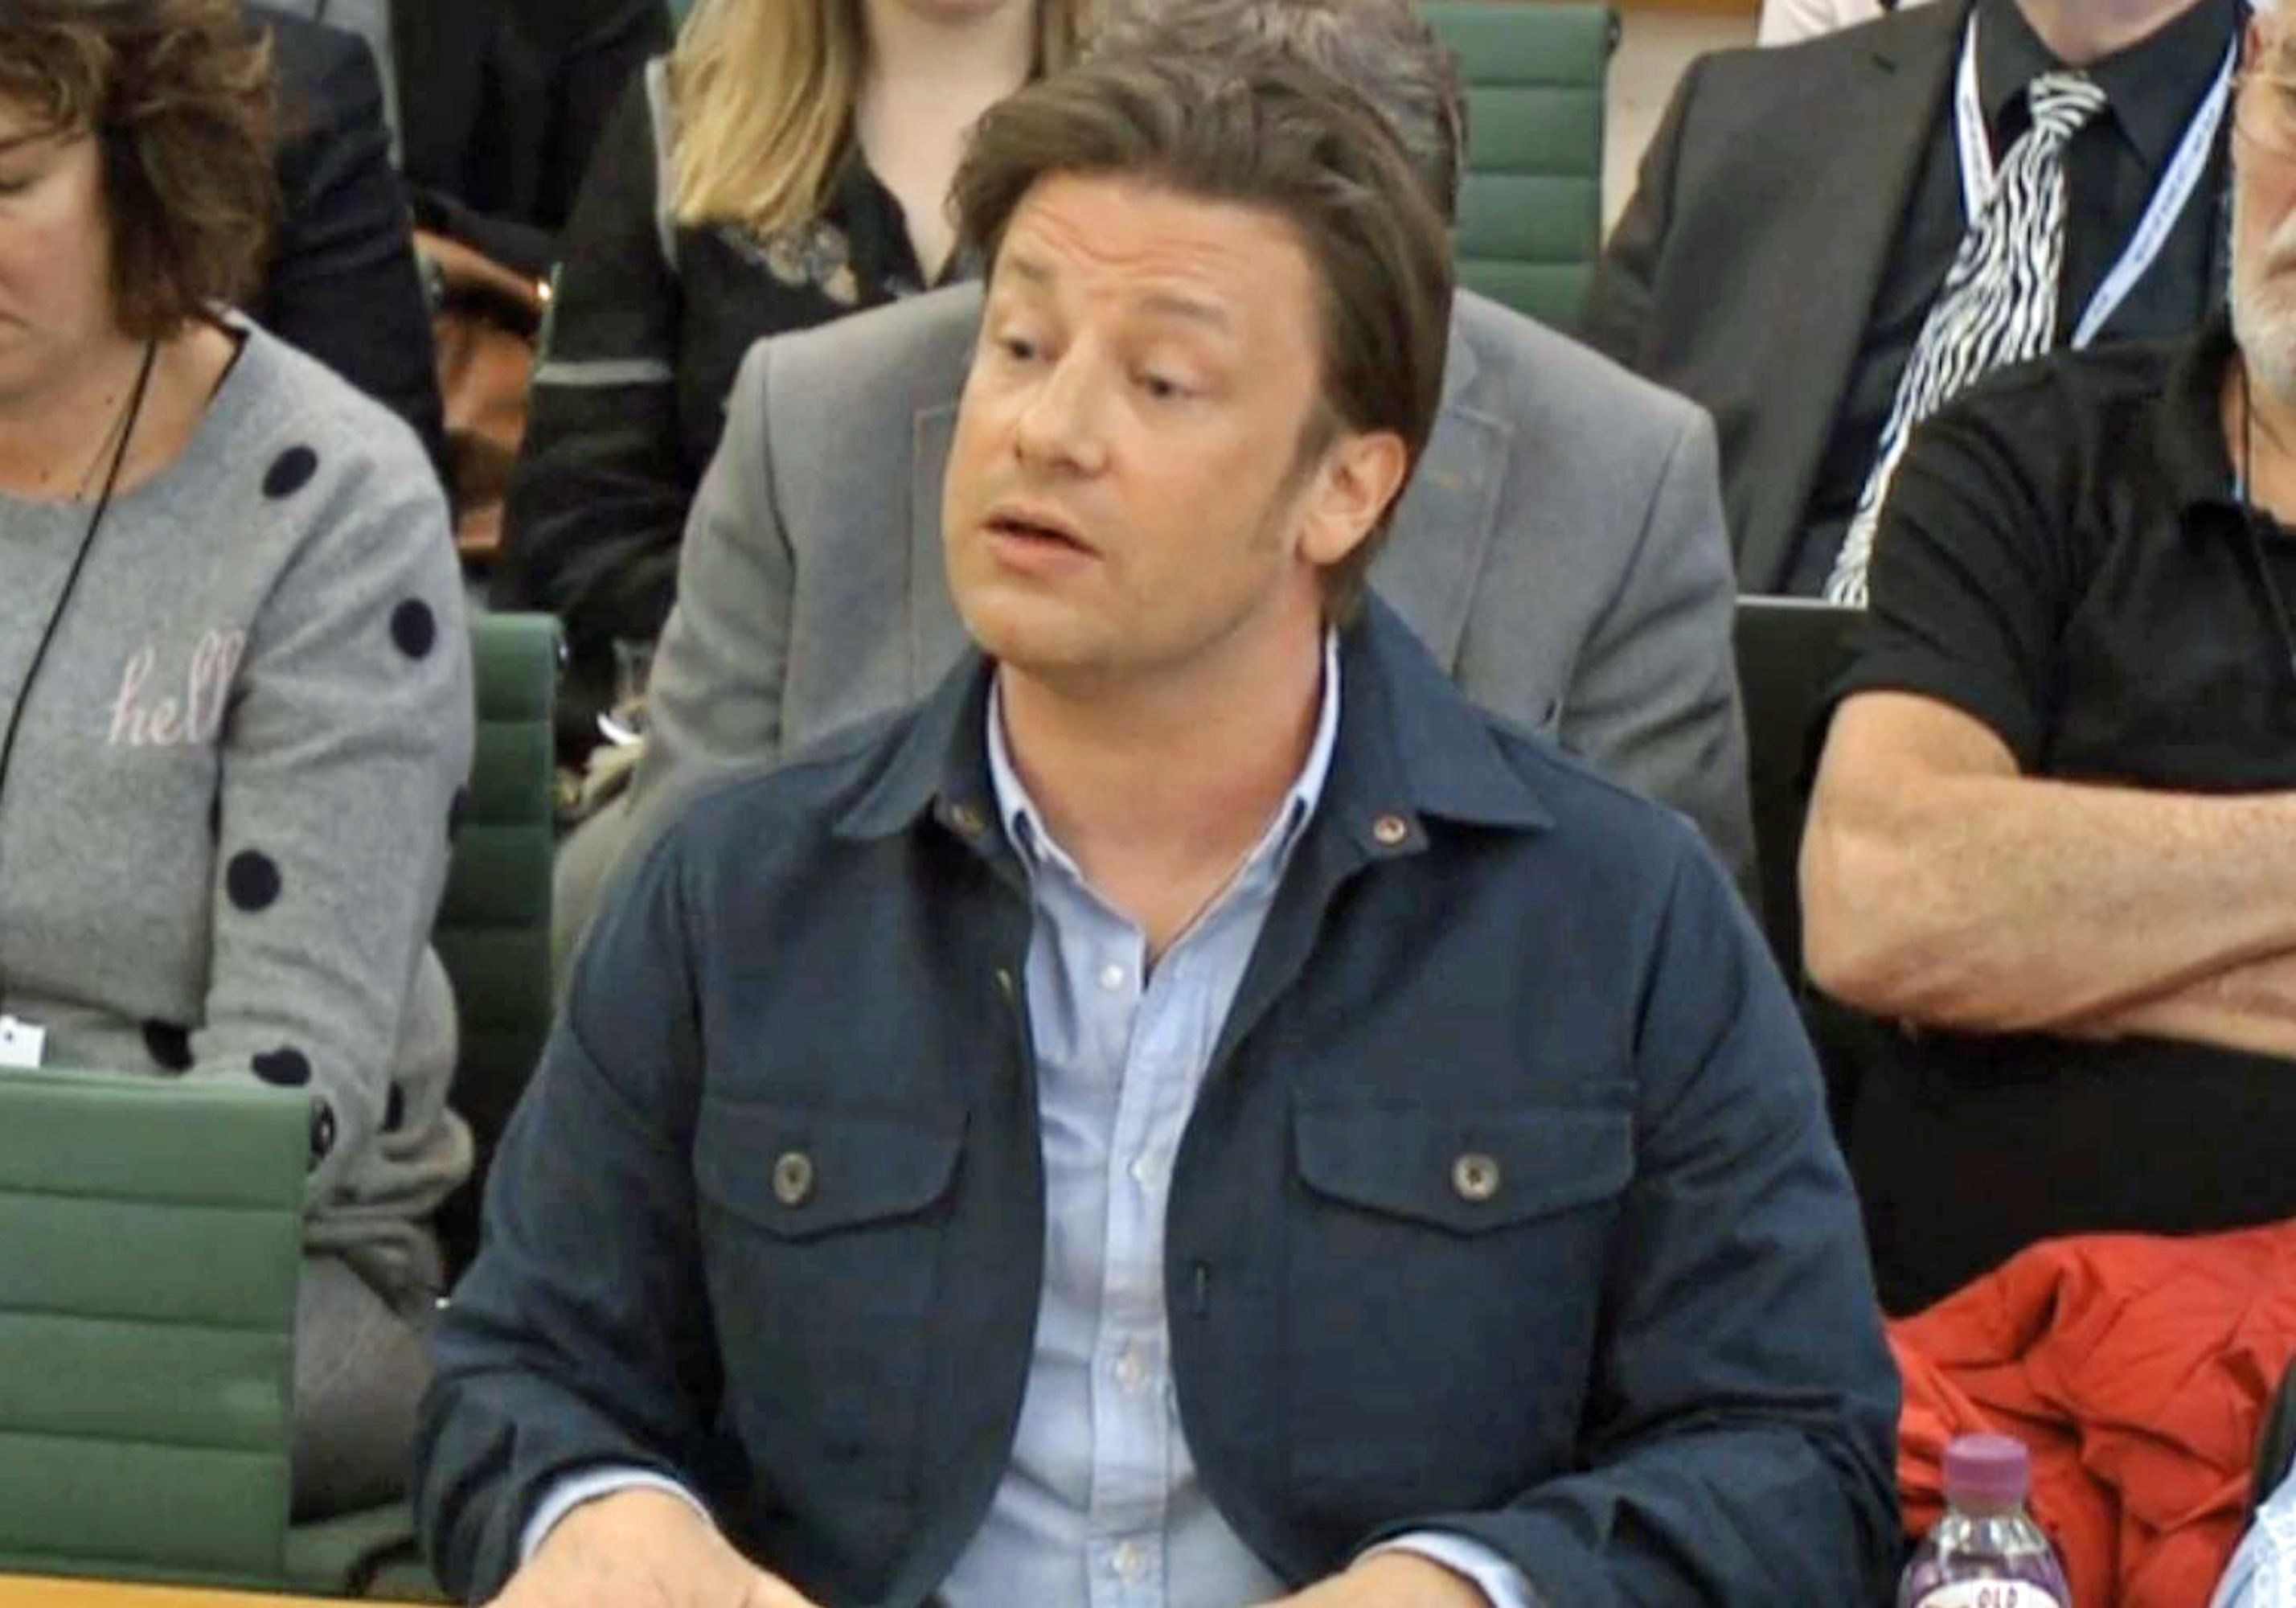 Jamie Oliver's jerk rice is causing a row in Britain